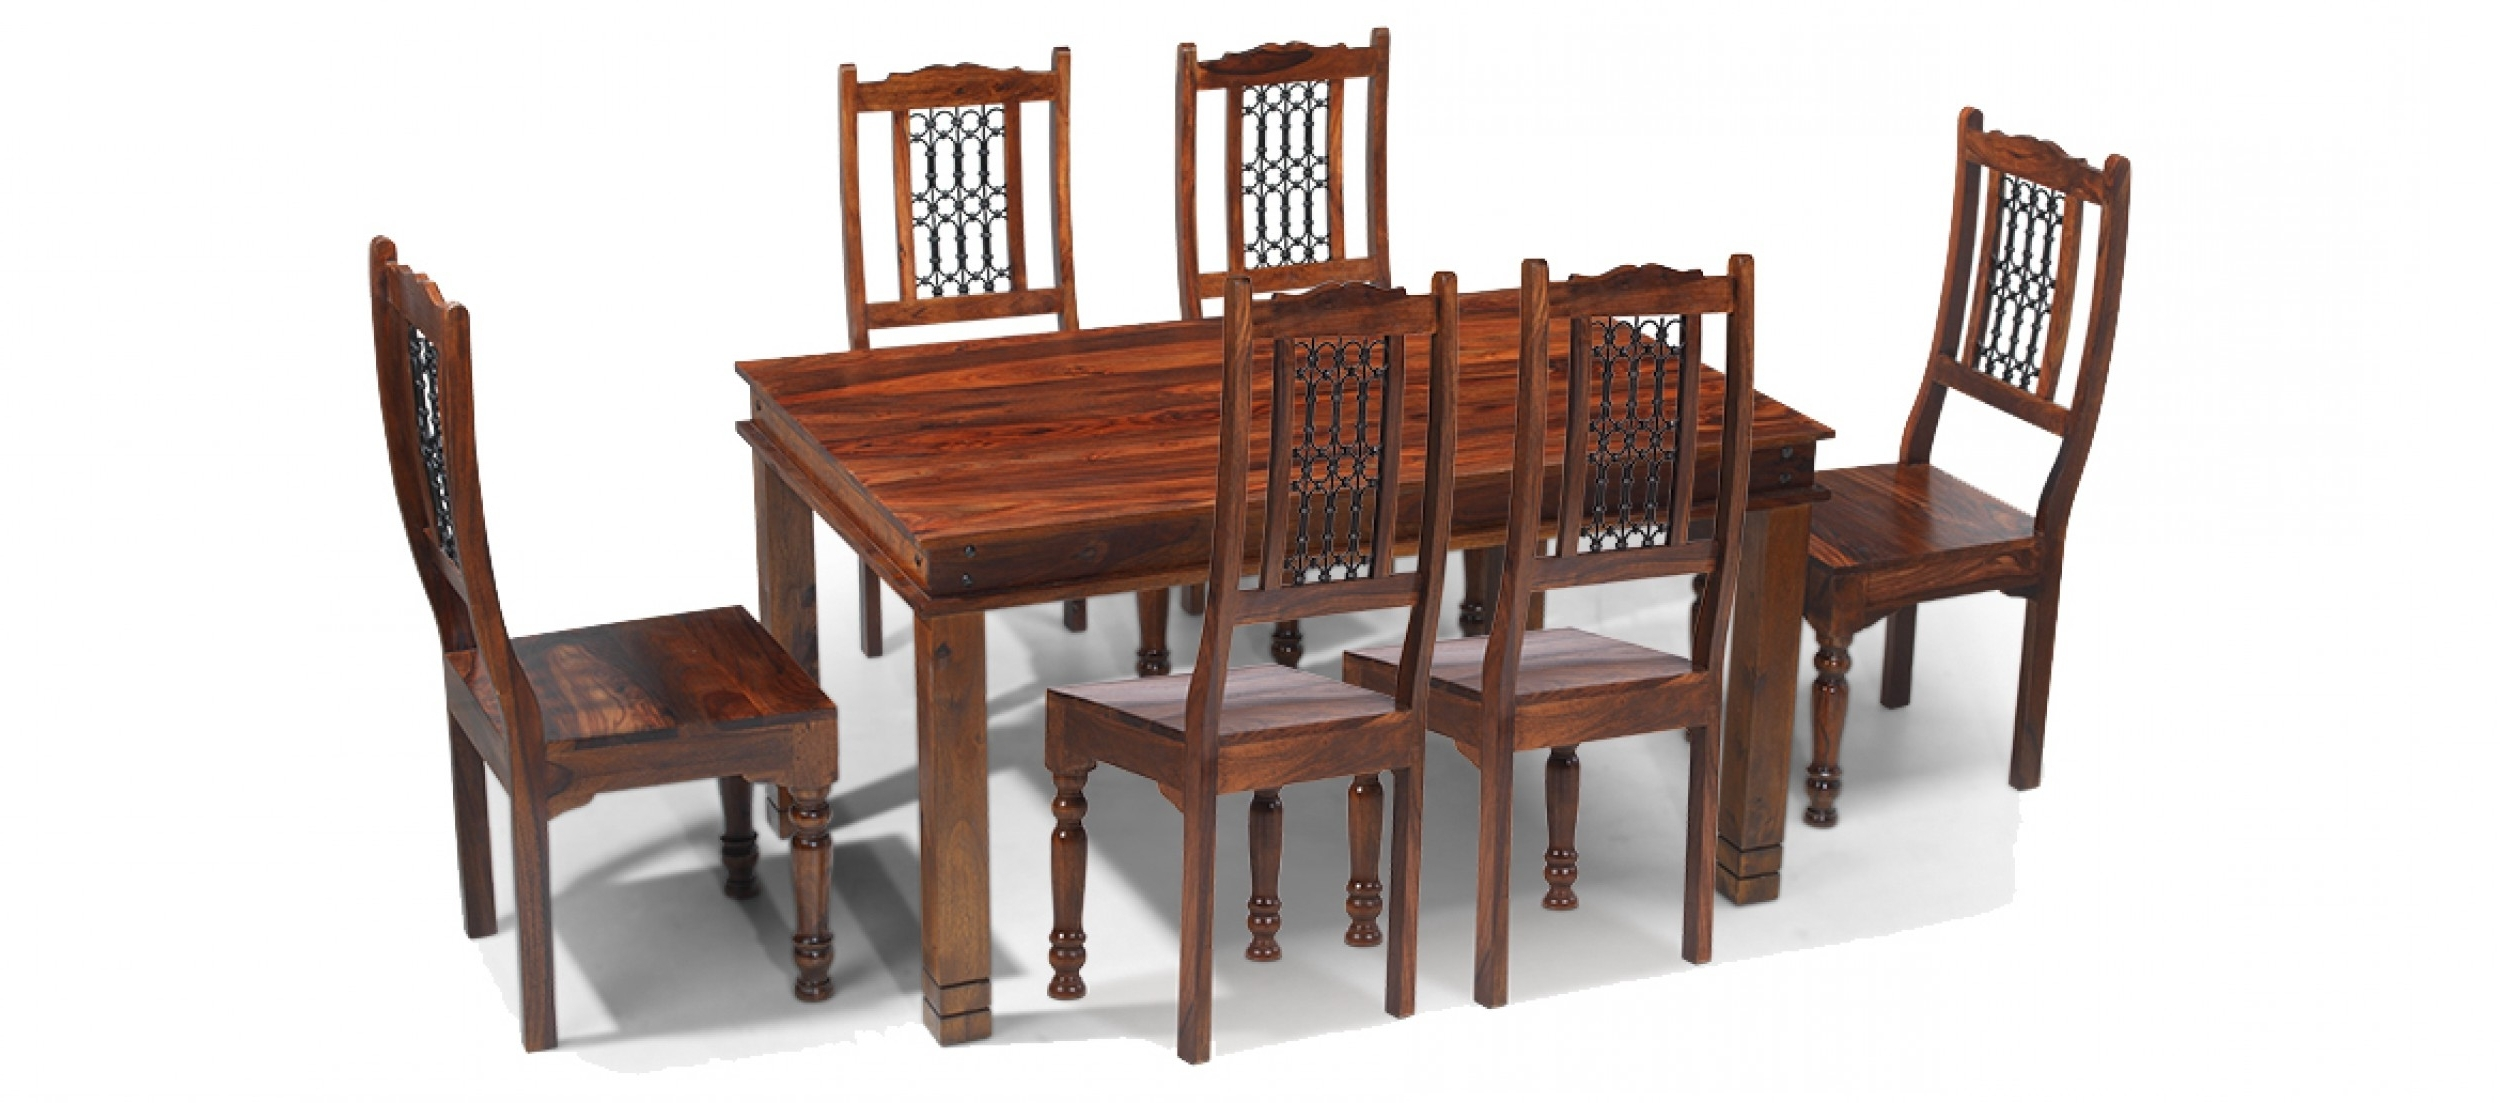 Well Known Oak Dining Tables With 6 Chairs Within Jali Sheesham 160 Cm Chunky Dining Table And 6 Chairs (View 12 of 25)